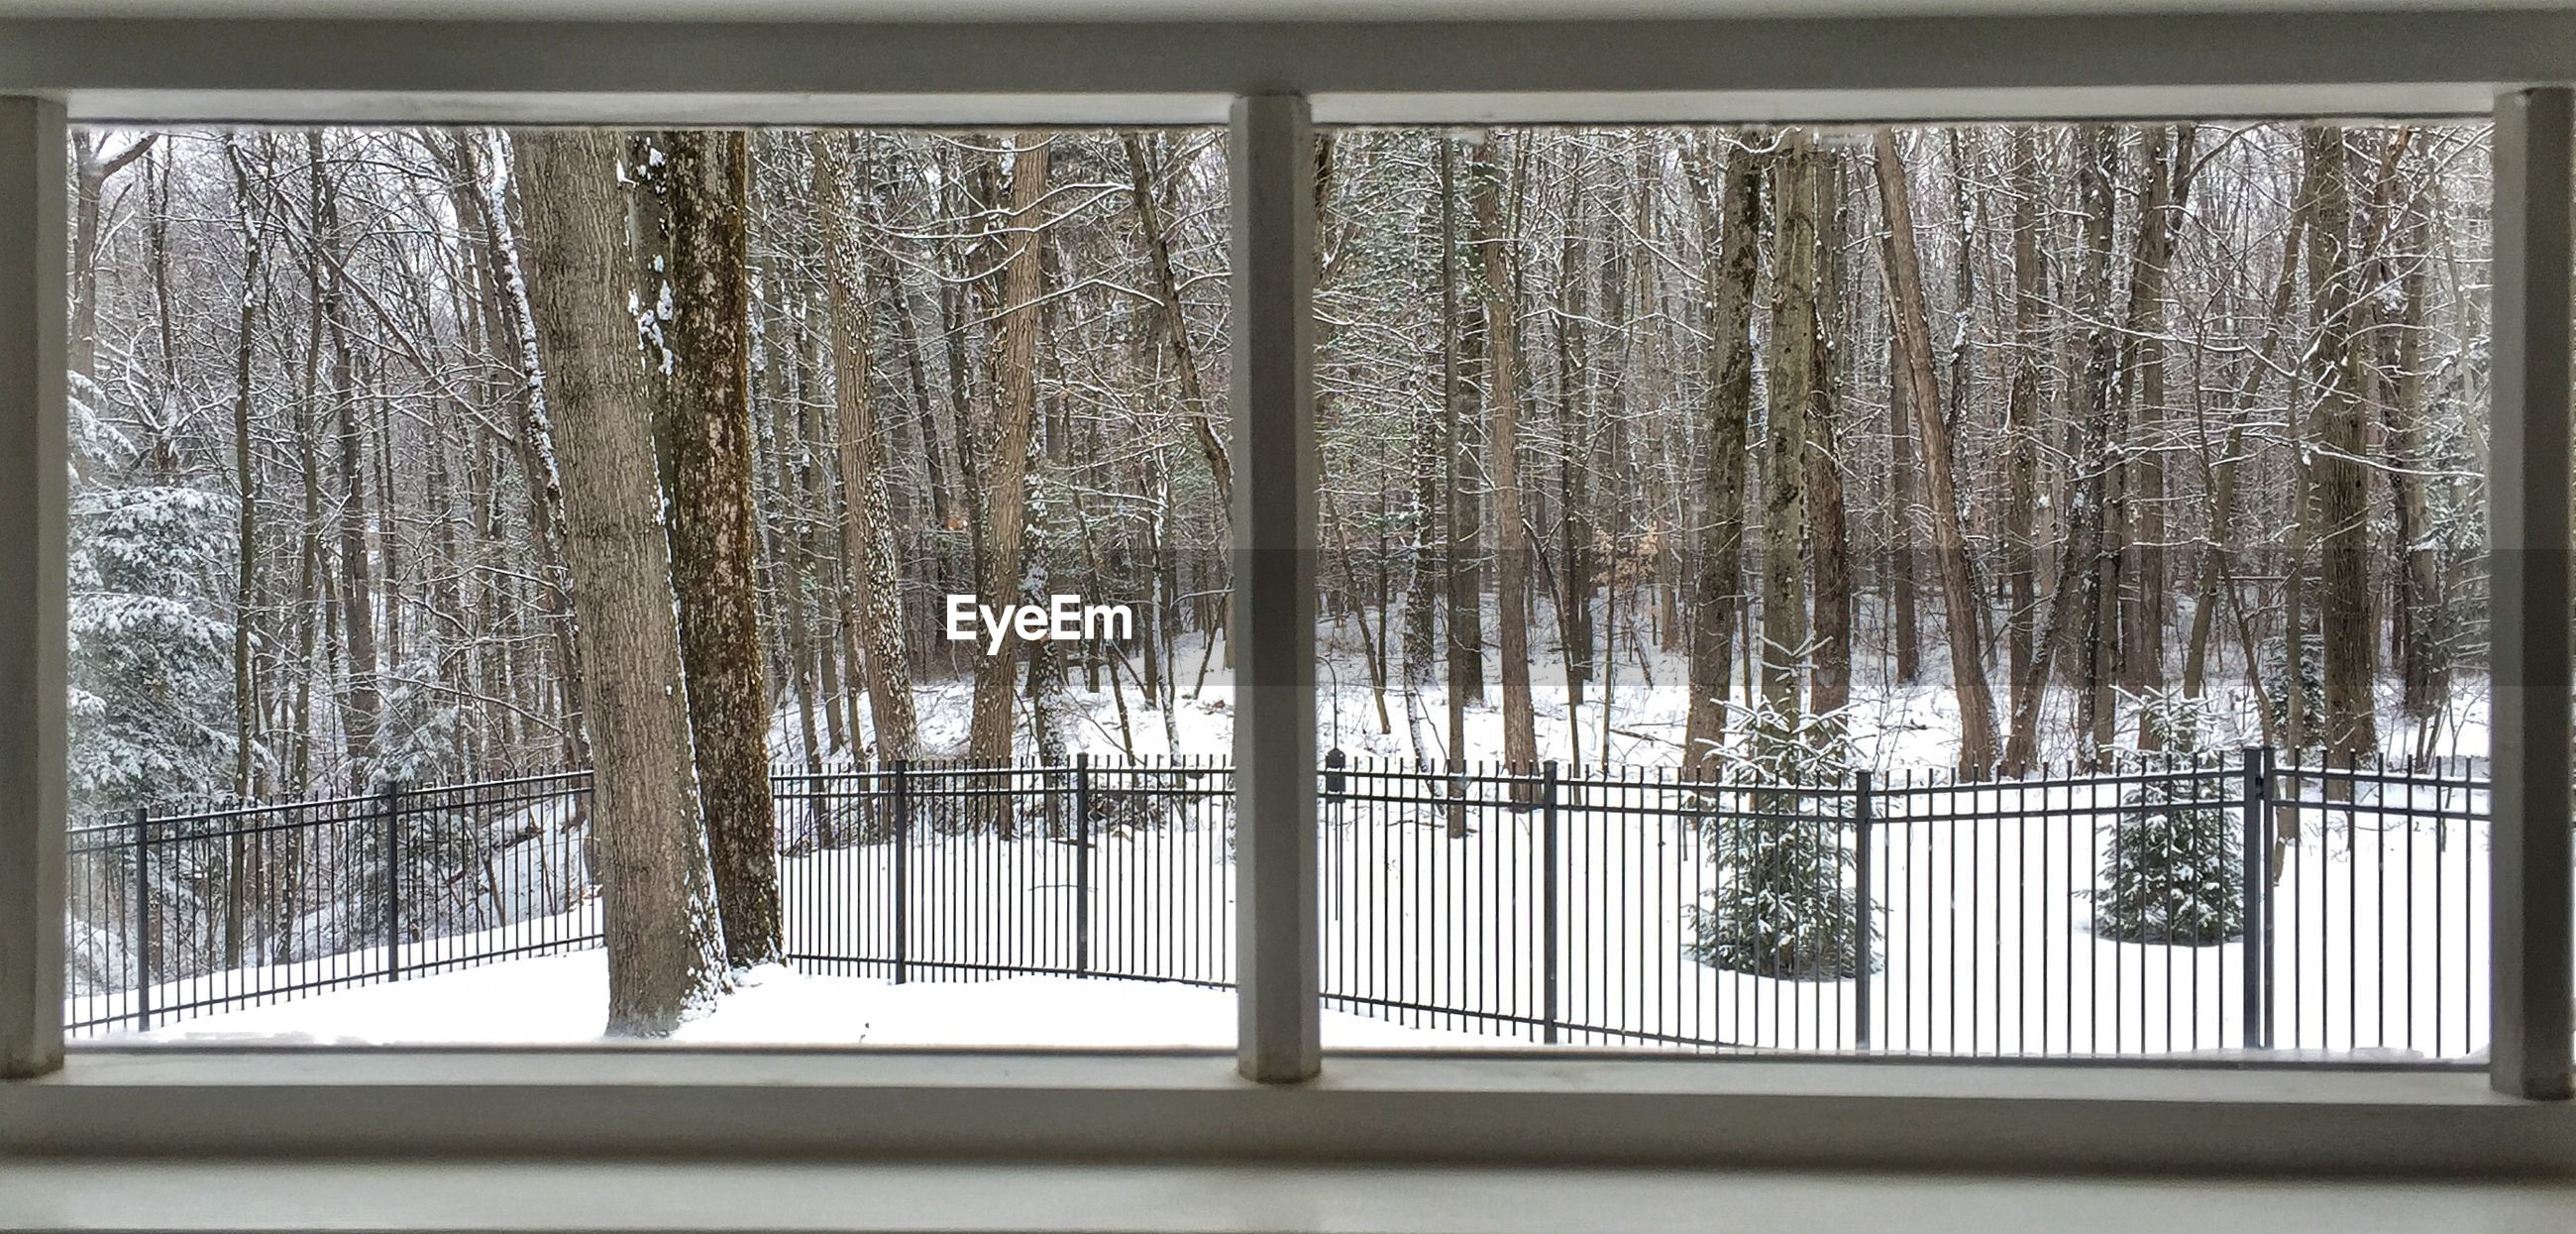 Bare trees on snow covered field seen through window